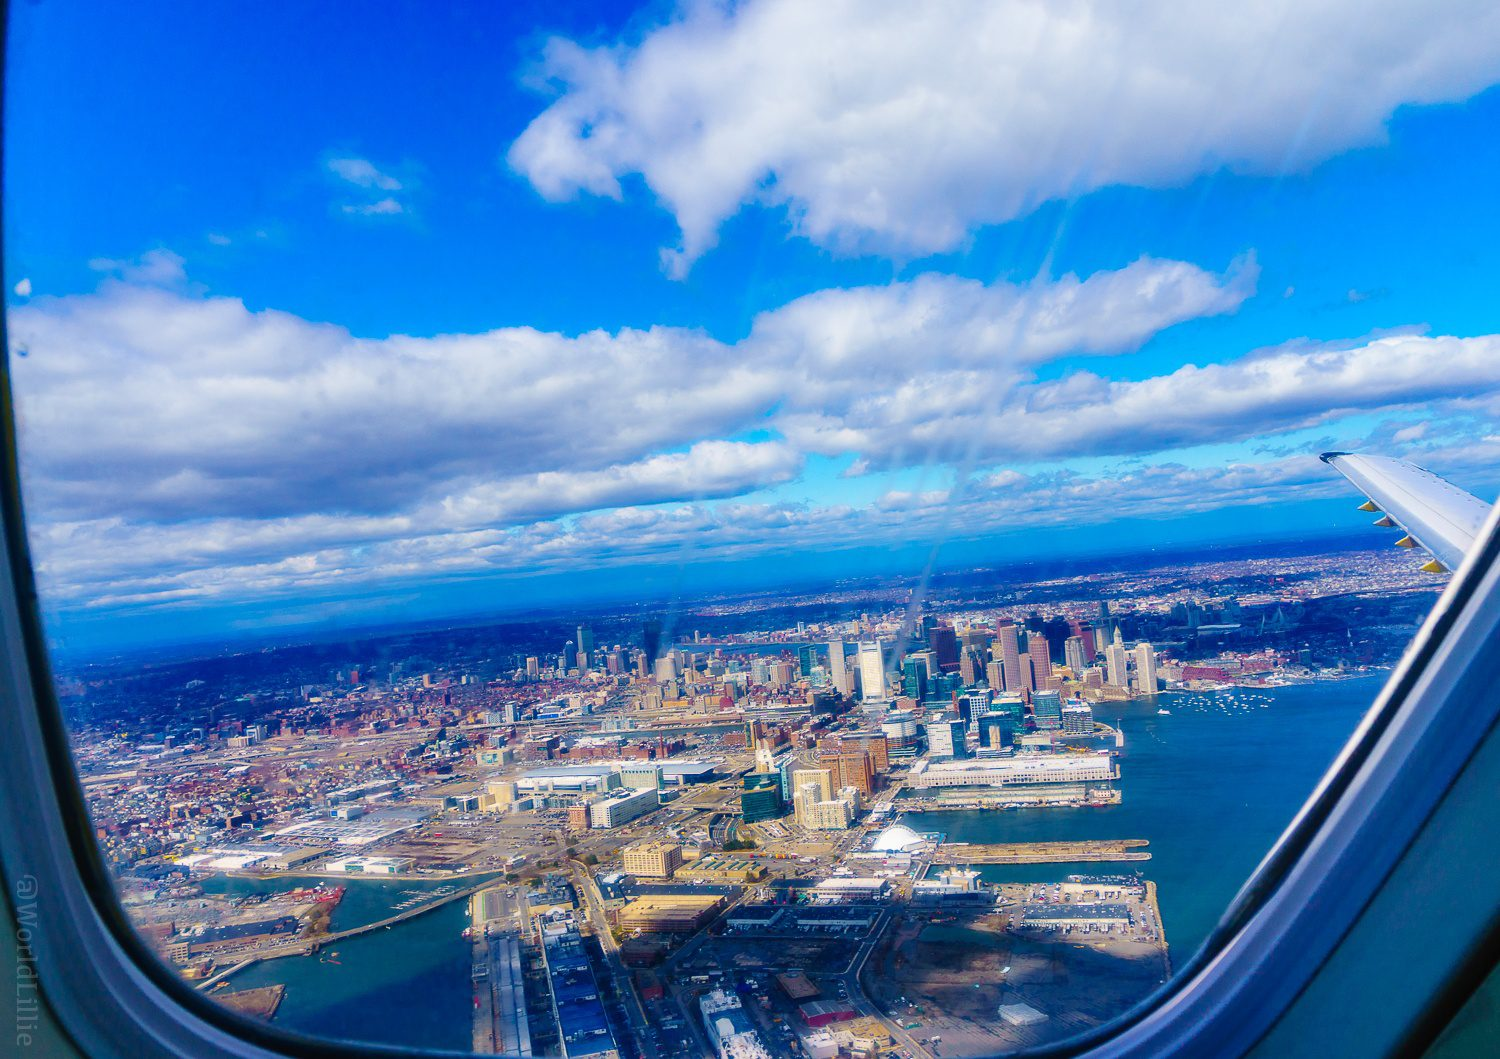 Boston, you look lovely from on Earth as well as above!